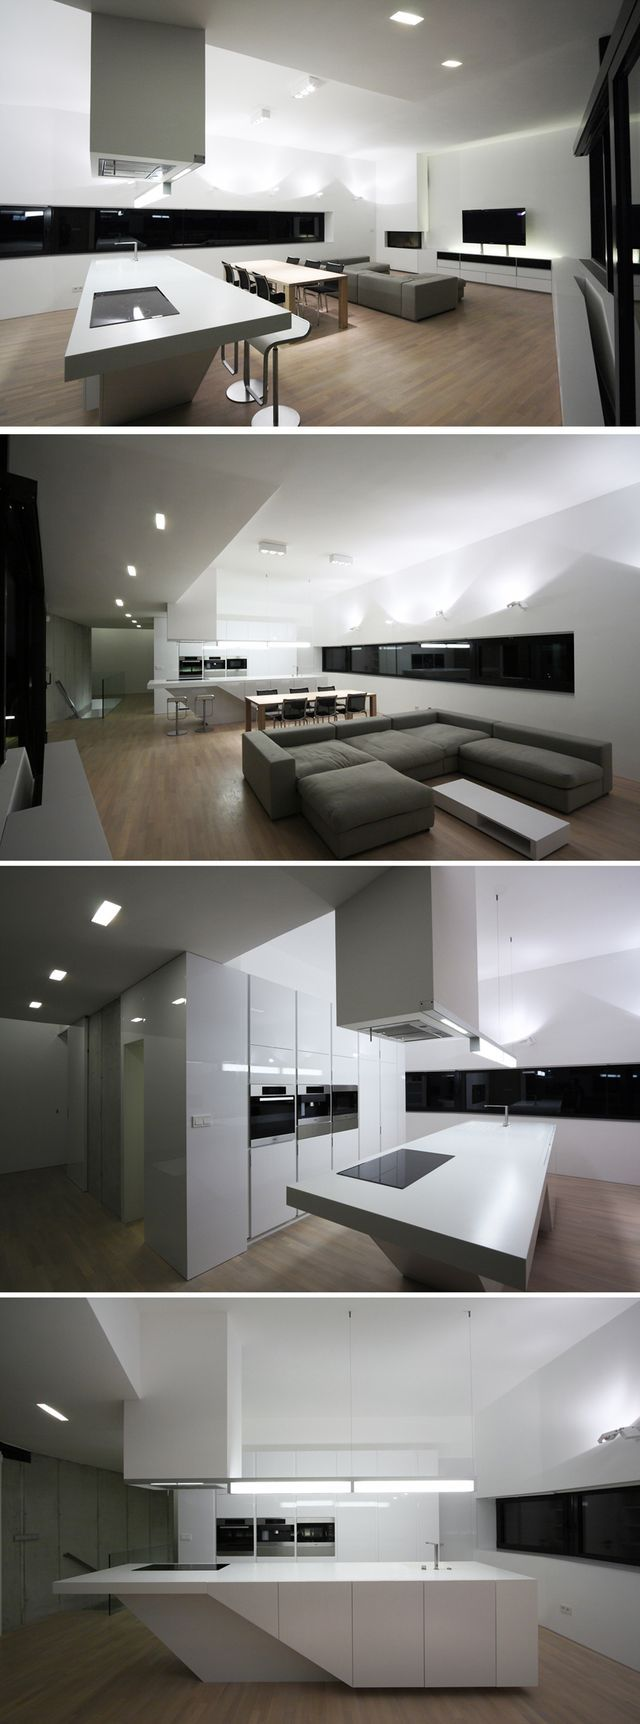 i like the sofa idea modern kitchen_interior ideas_house_architecture